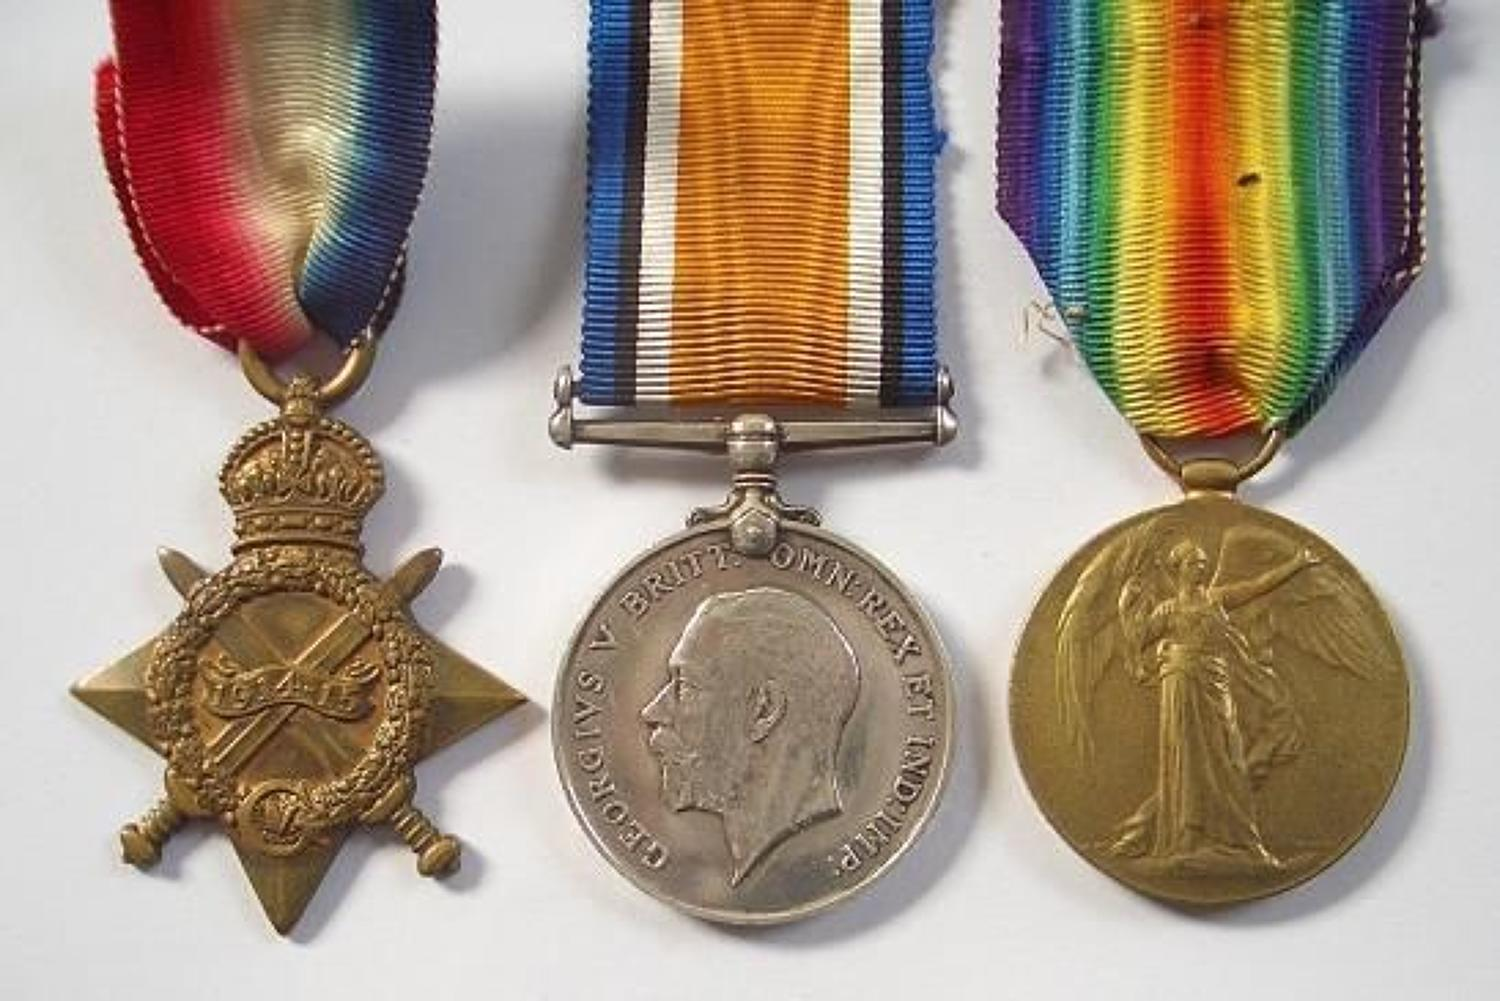 South Midland Division Cycle Company Army Cyclist Corps Medal Group.